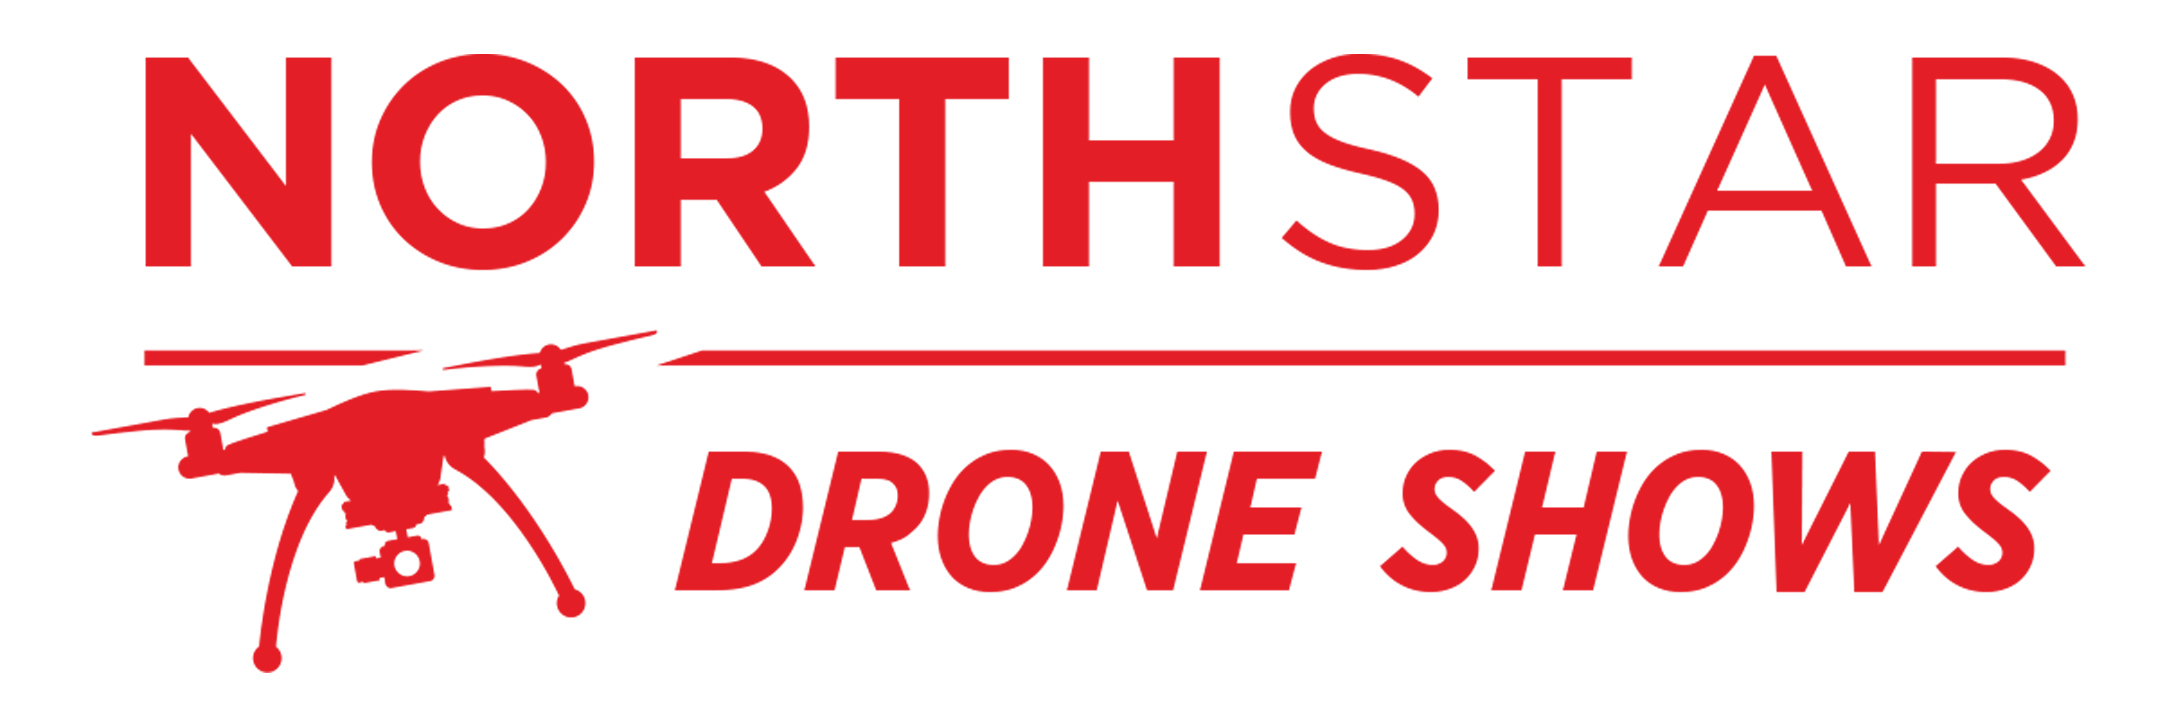 North Star drone shows!